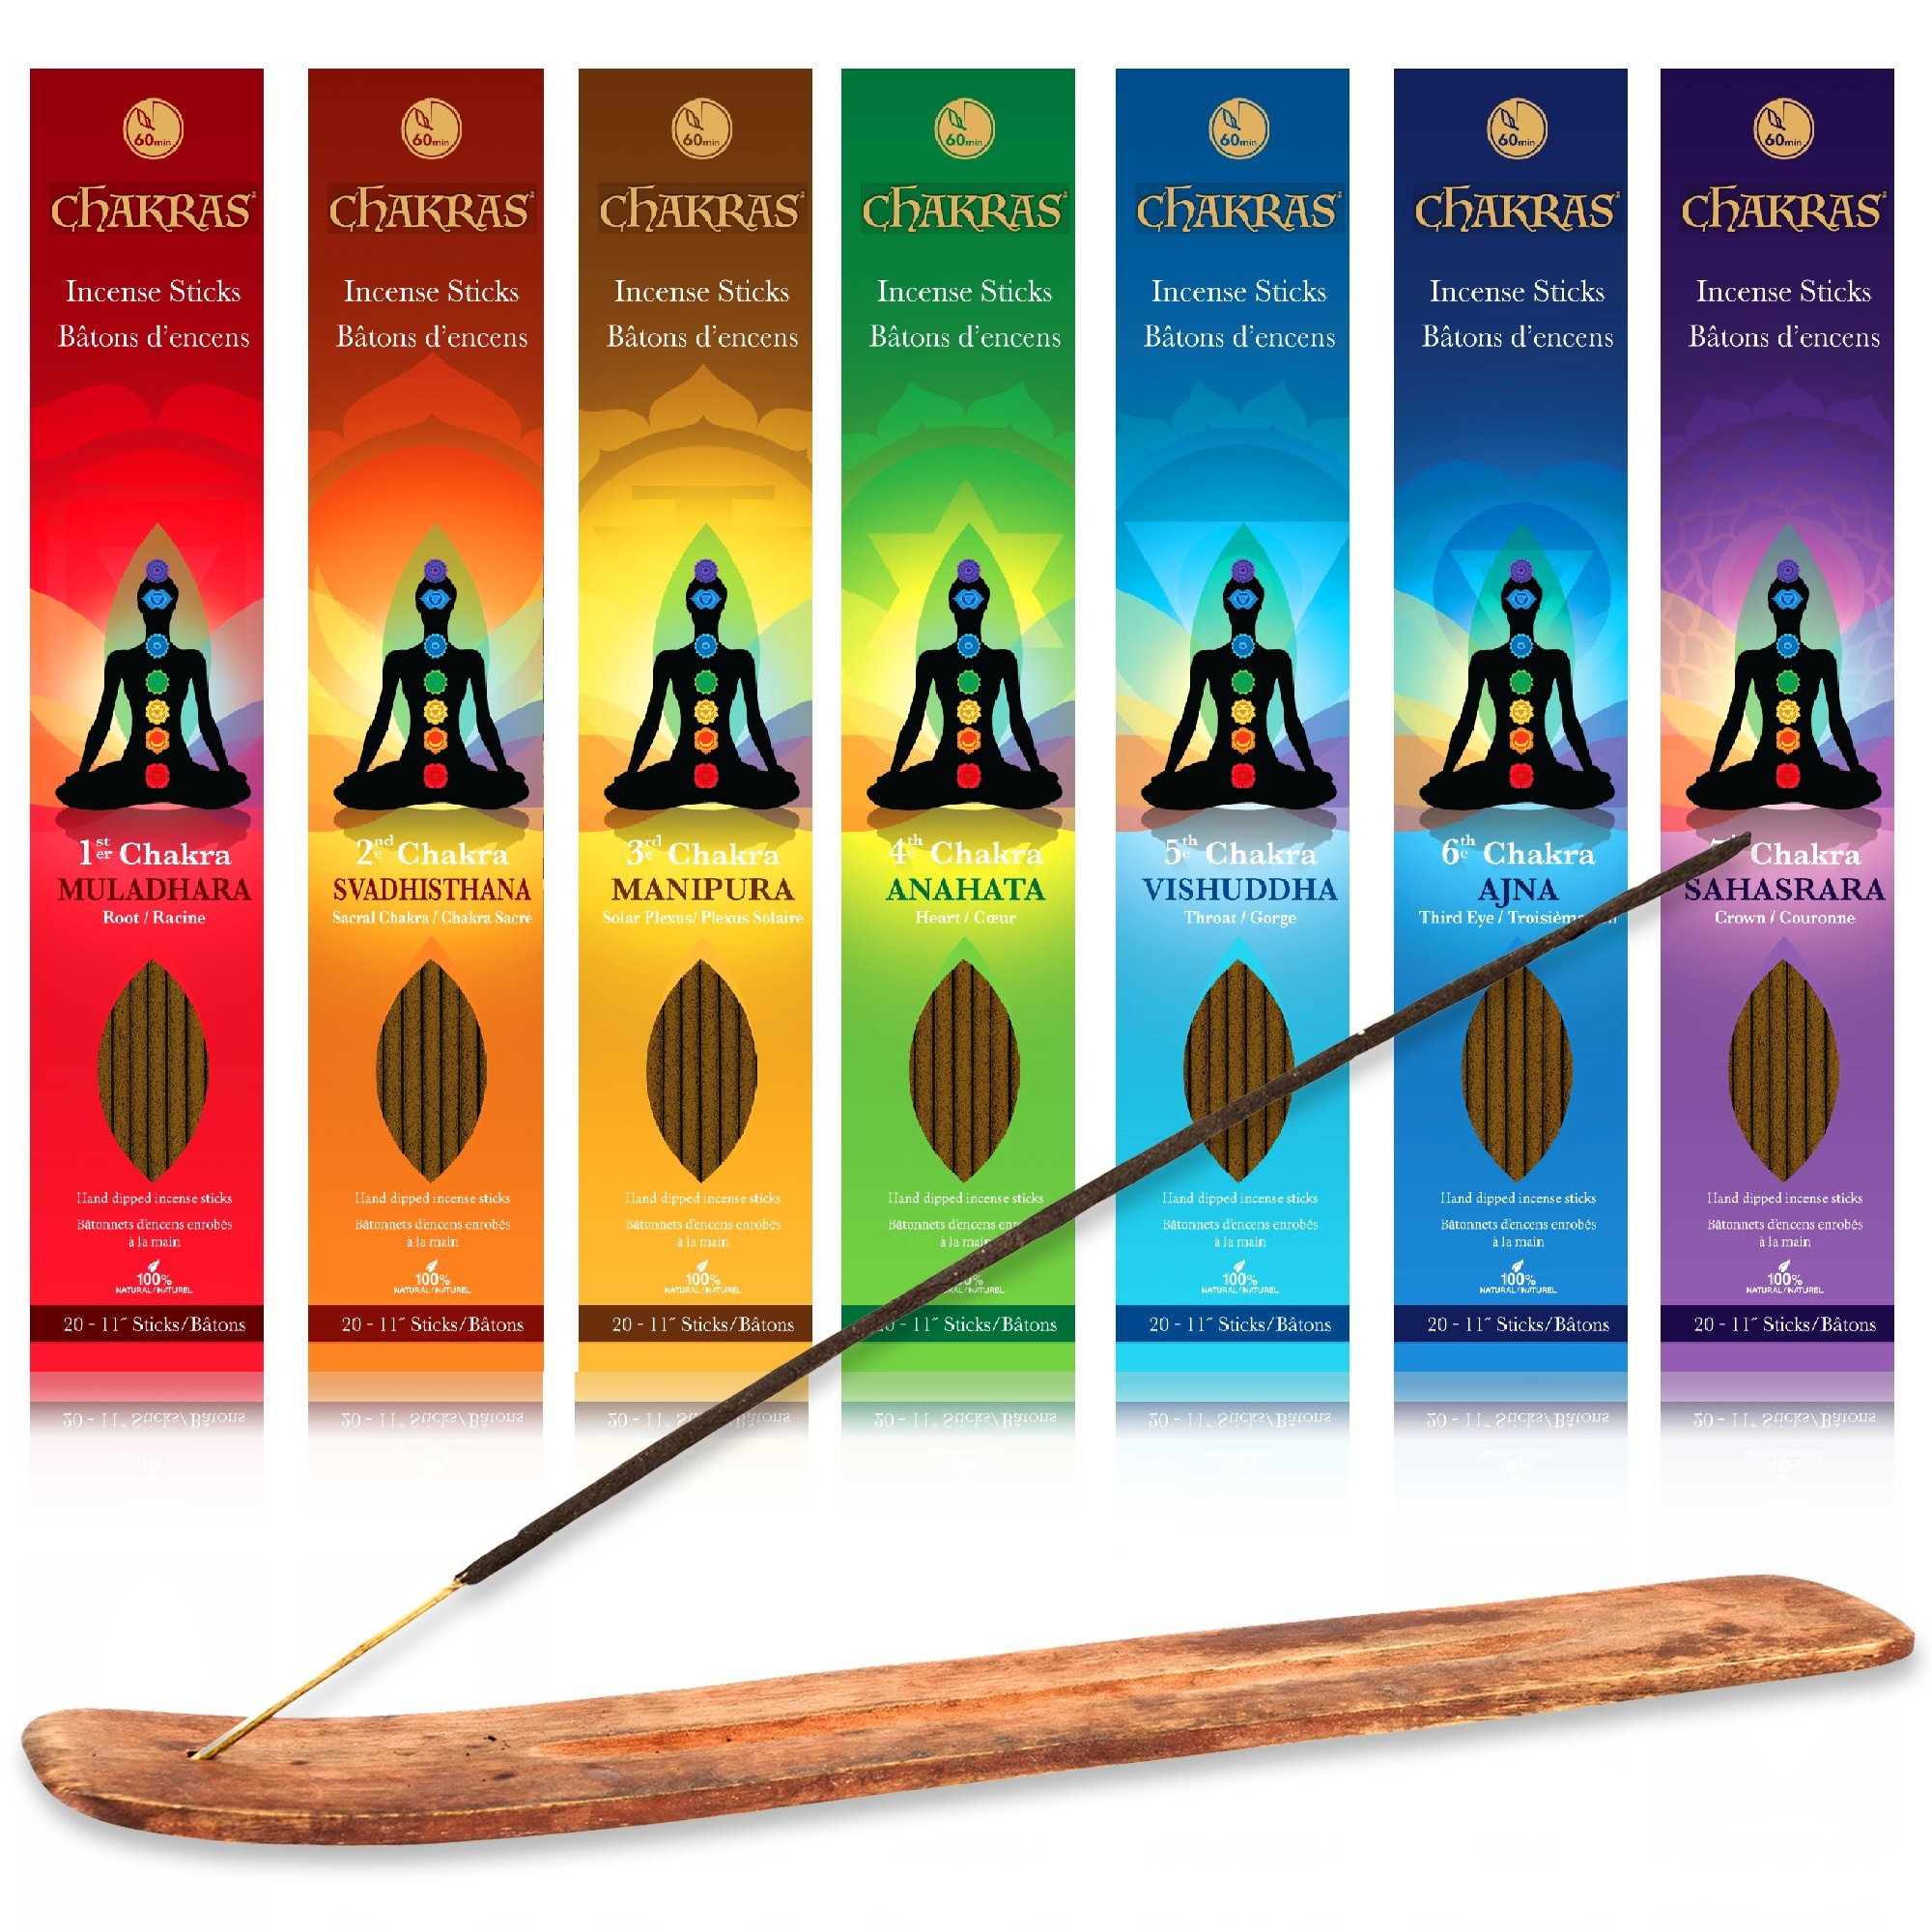 Incense - 7 Chakras Root To Crown Incense Set - 140 Sticks - Free Of Nasty Chemicals Like Charcoal And Other Accelerant- Fills The Room With The Perfect Aroma - 100% Natural - Lasts 60+ Minutes by Chakras Incense